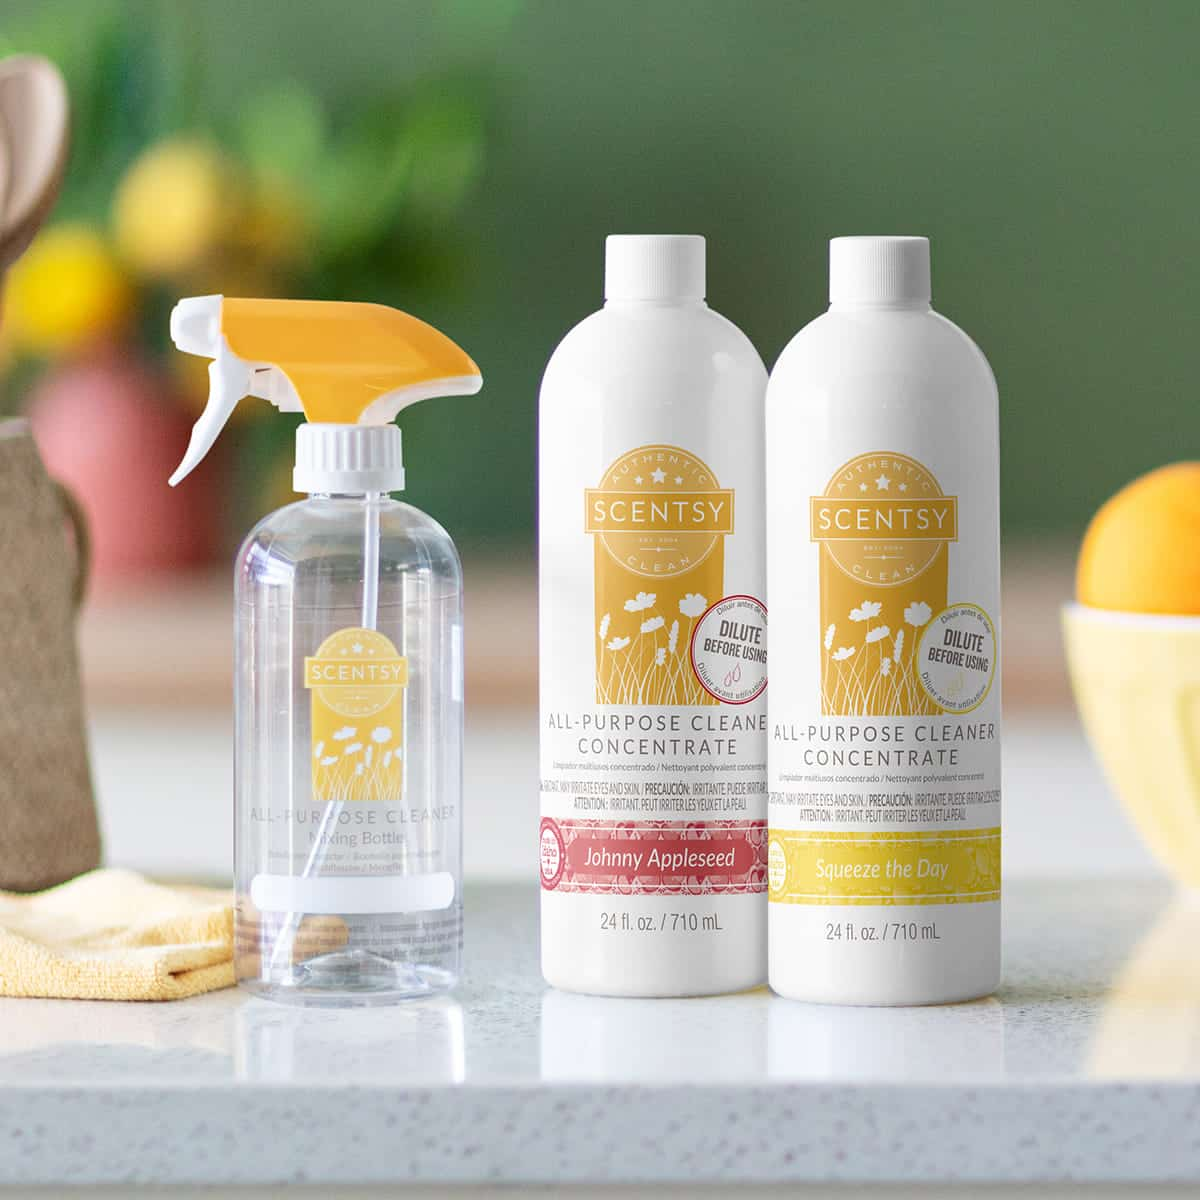 NEW! Special – Two All-Purpose Scentsy Cleaner Concentrates + free mixing bottle* | Shop Now